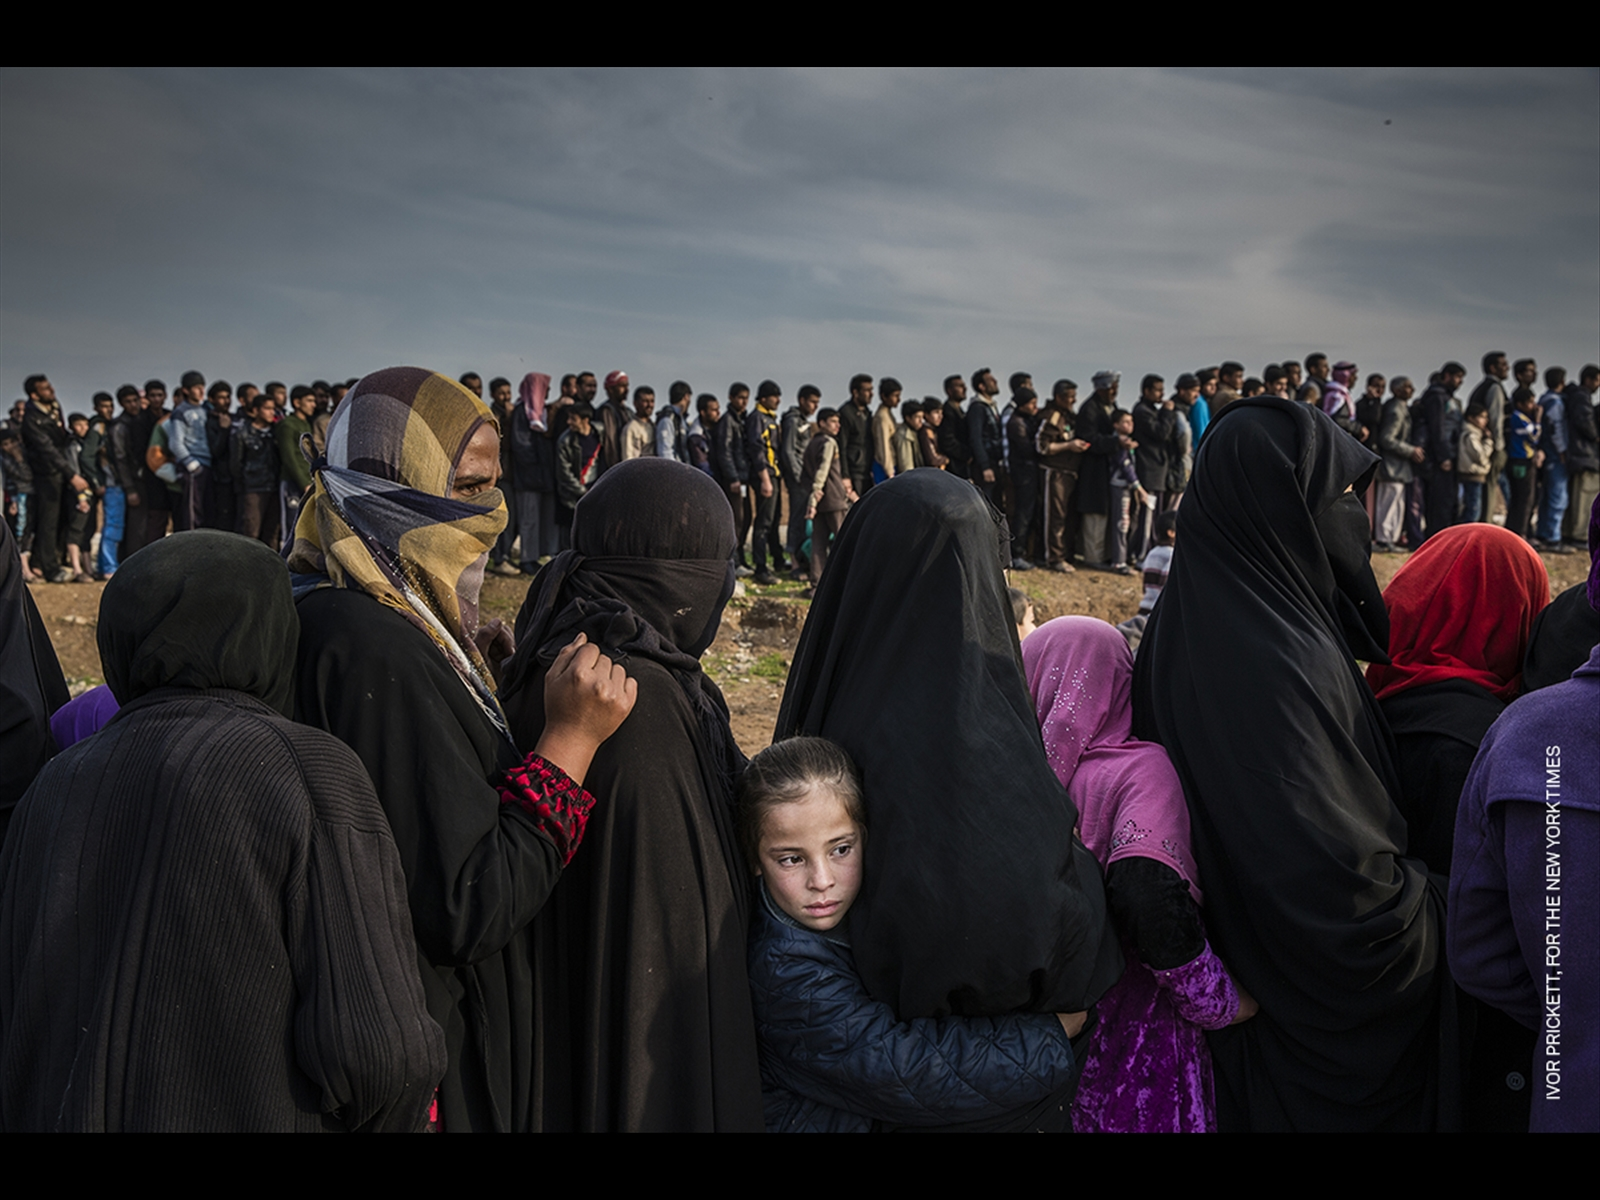 For The New York Times. World Press Photo of the Year nominee, General News first prize stories